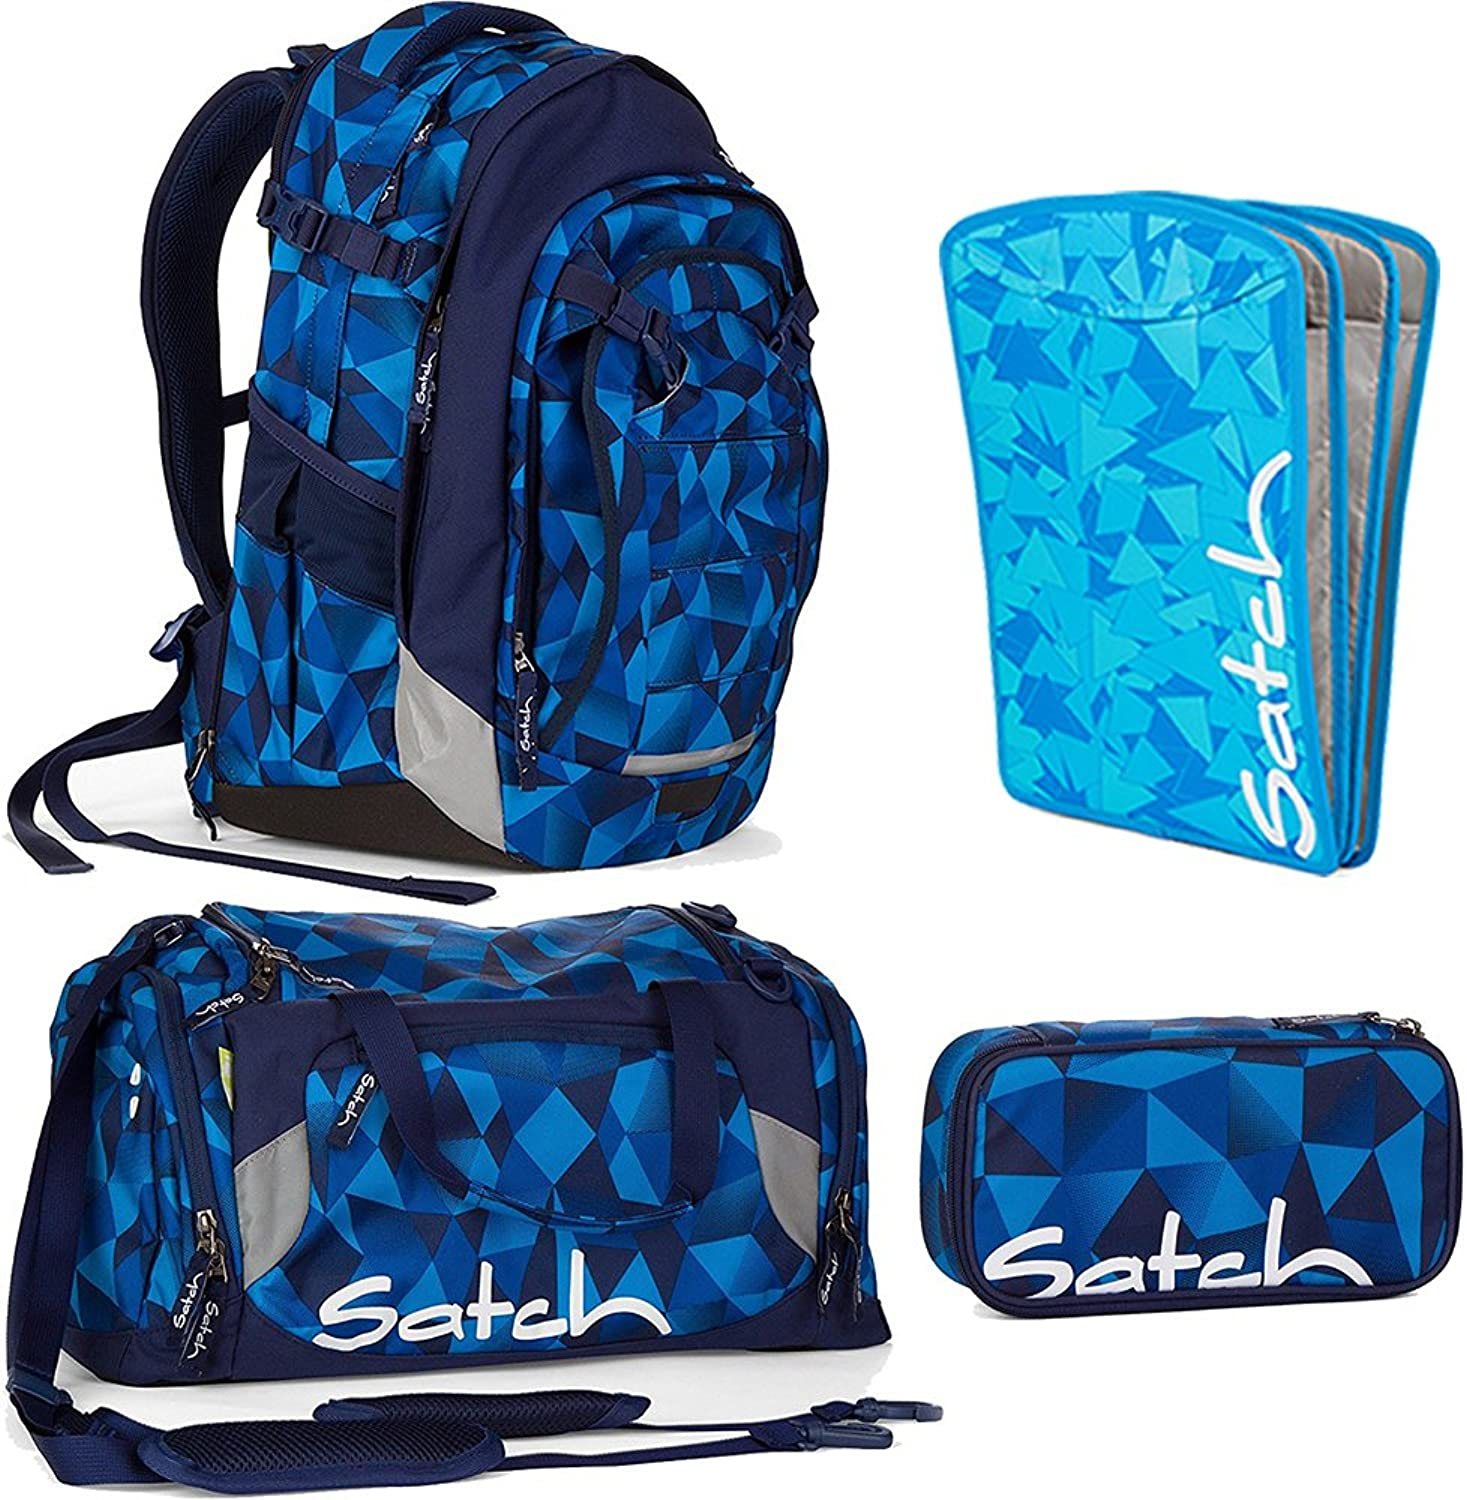 caeb70a63f22c Satch Match by Ergobag Blau Crush 4-teiliges Set Rucksack